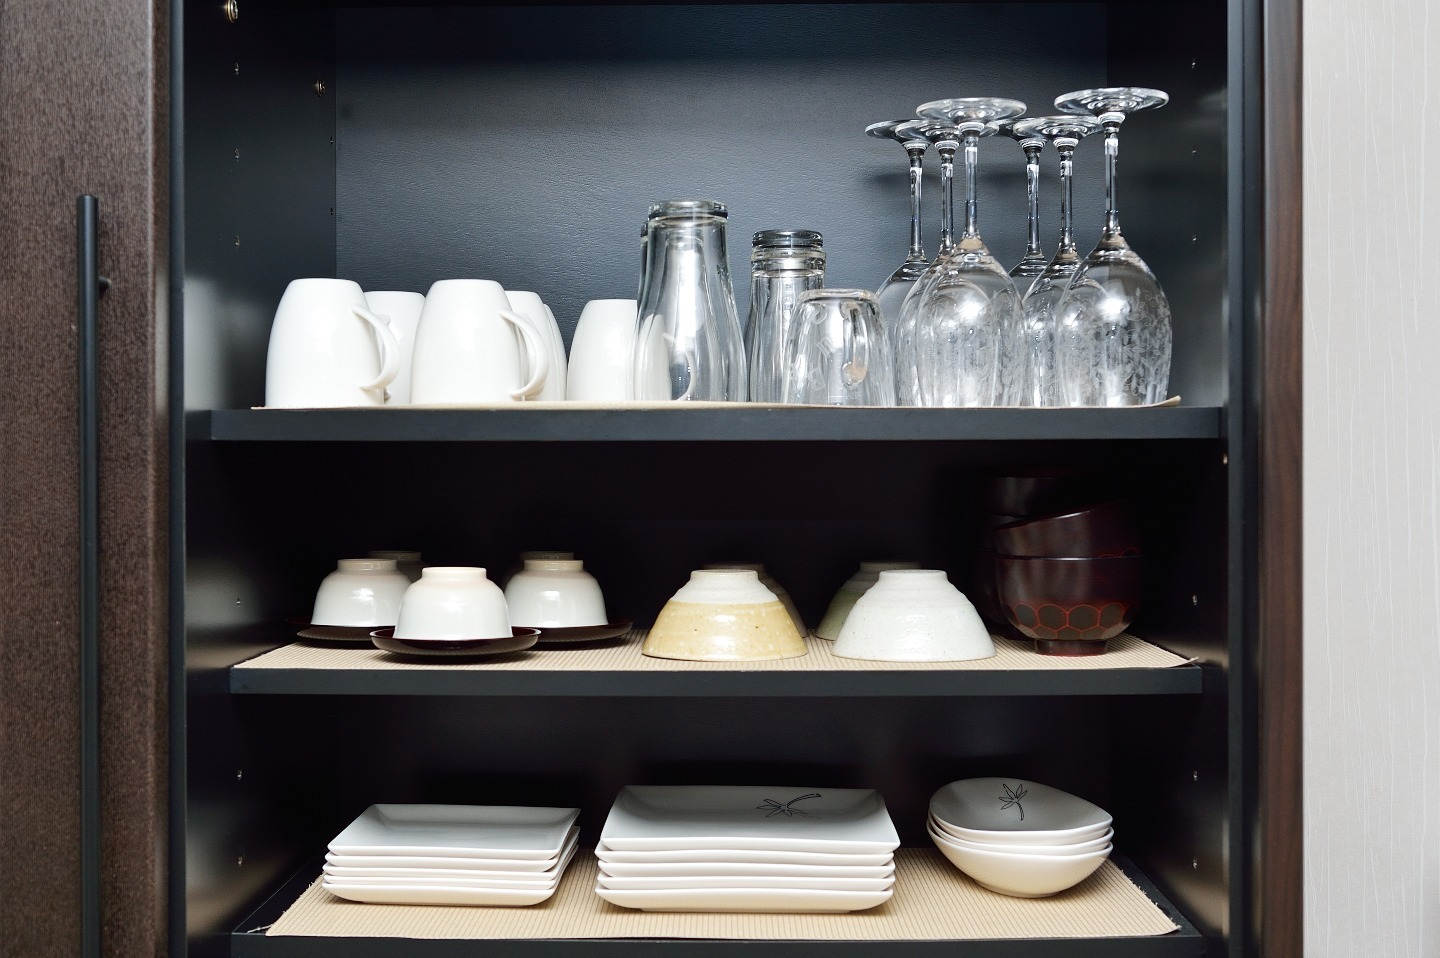 Glasses, cups, and plates